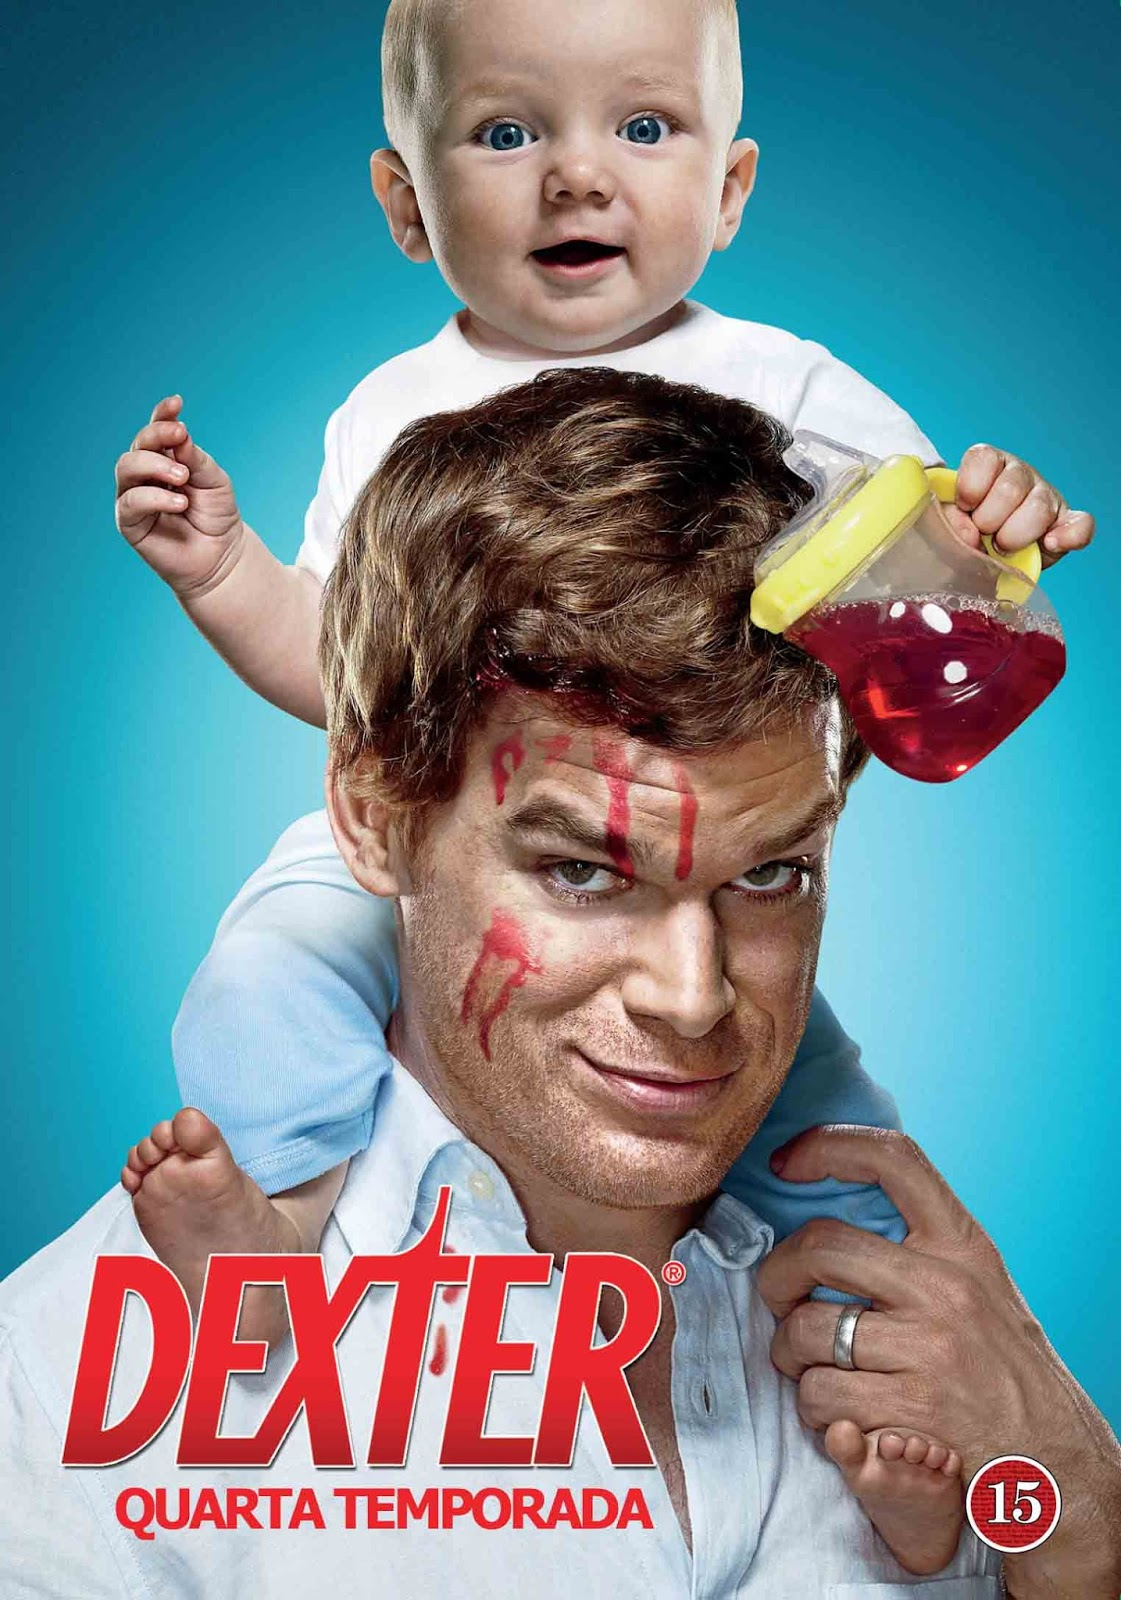 Dexter 4ª Temporada Torrent - Blu-ray Rip 720p Dublado (2009)